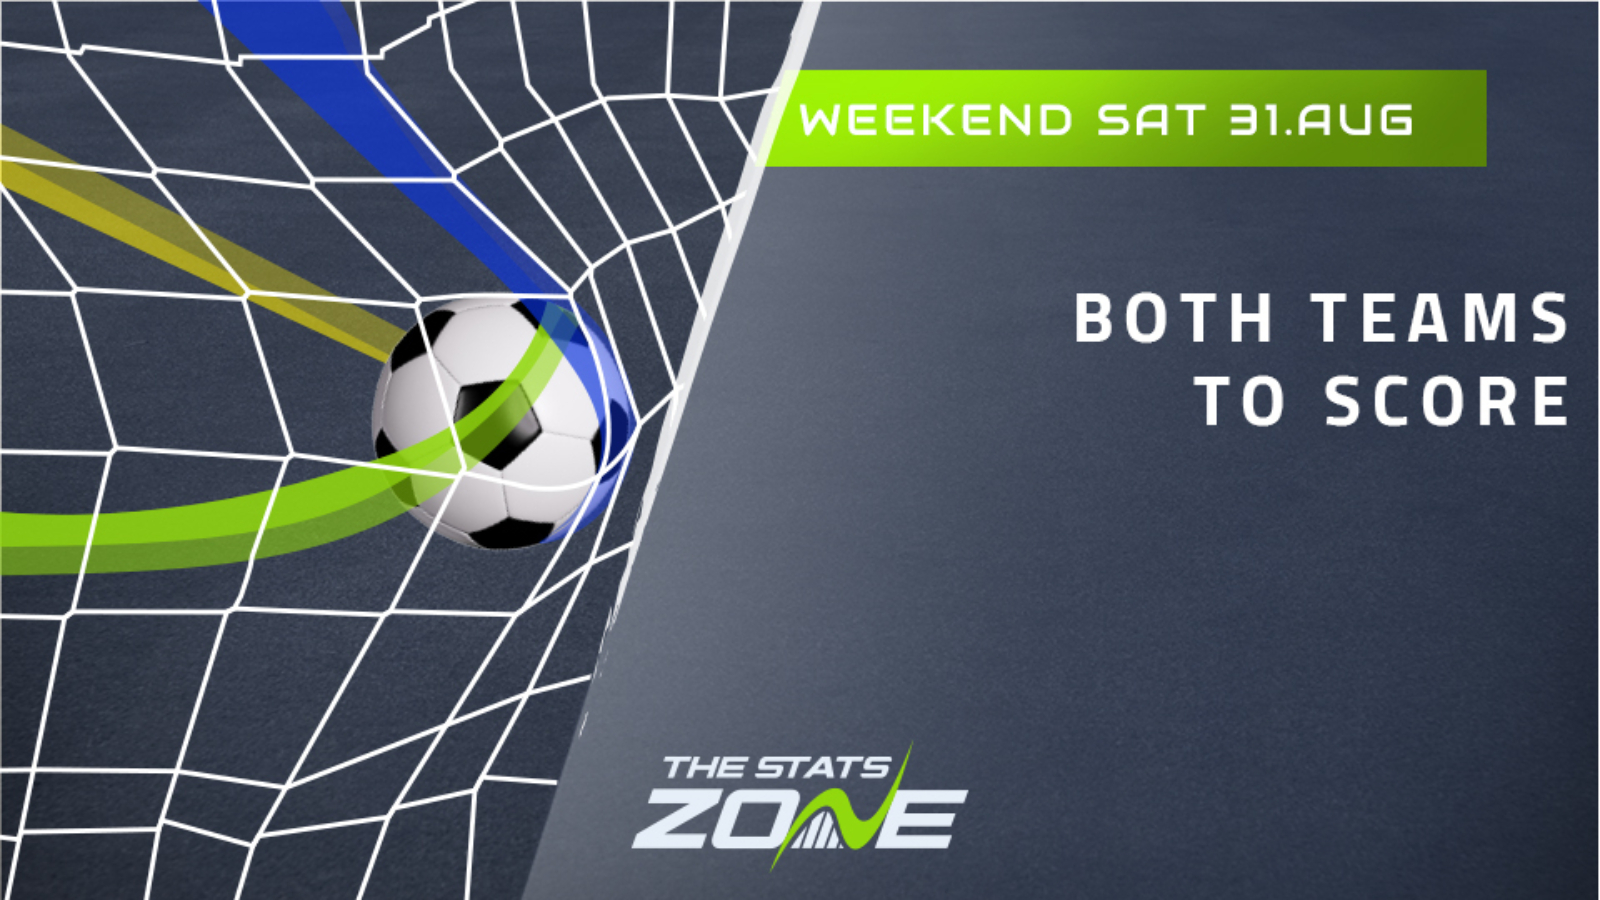 Football tips for the weekend both teams to score betting spread betting hedging strategies using futures